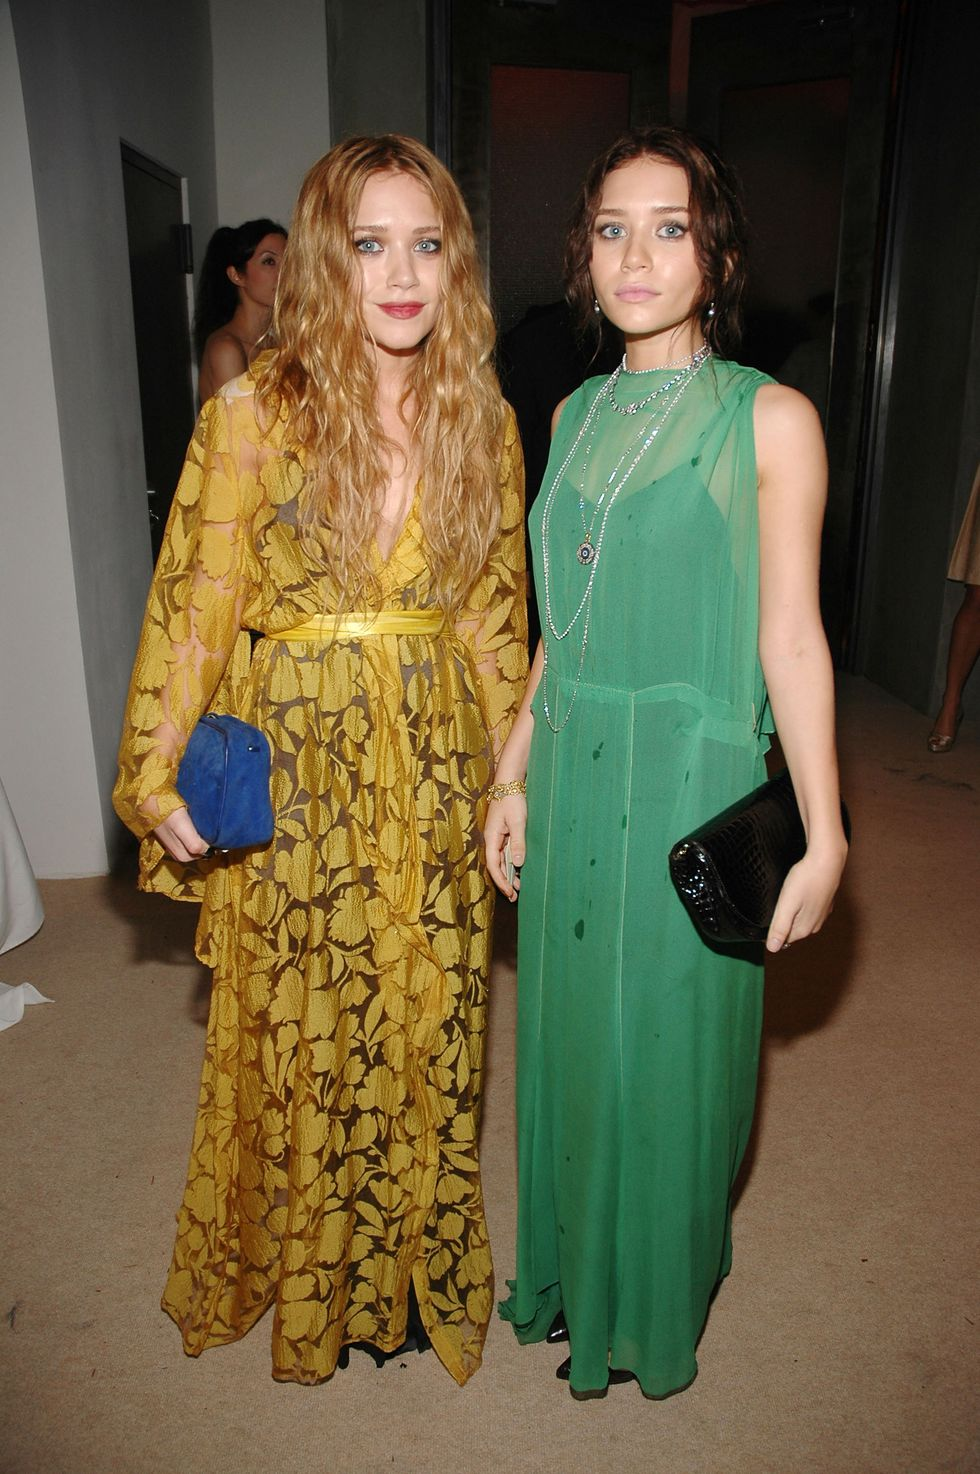 November 16, 2006 At the 2006 CDFA Fashion Awards, the twins wore floor-length dresses in bright mustard yellow and green.